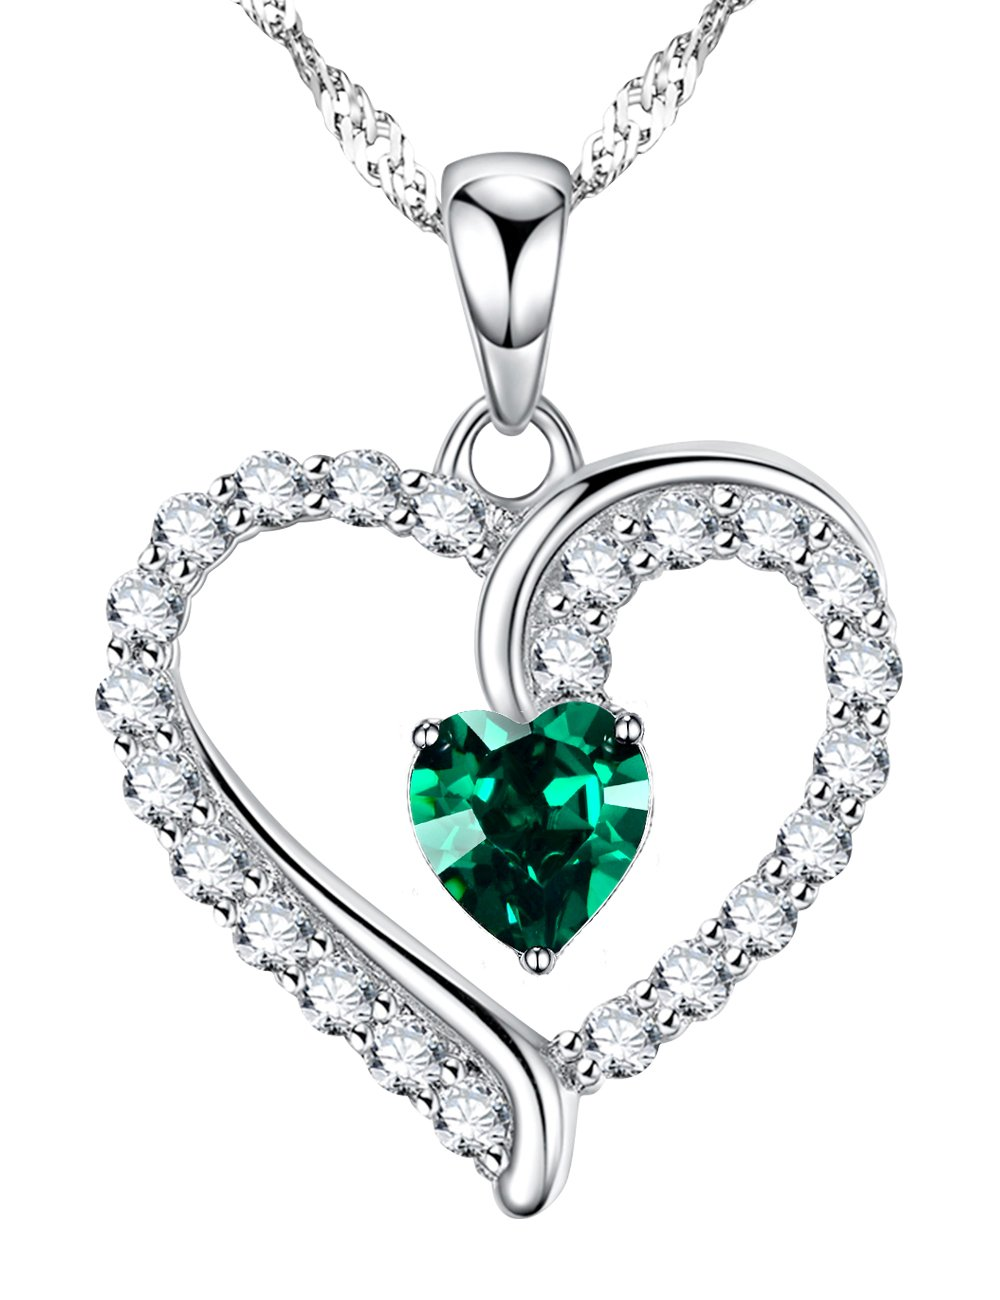 Love Heart Jewelry Gifts for Wife for Women Created Green Emerald Pendant Necklace Birthday Anniversary Gifts for Her for Daughter for Girlfriend Sterling Silver Charm,18''+2'' Changeable Chain